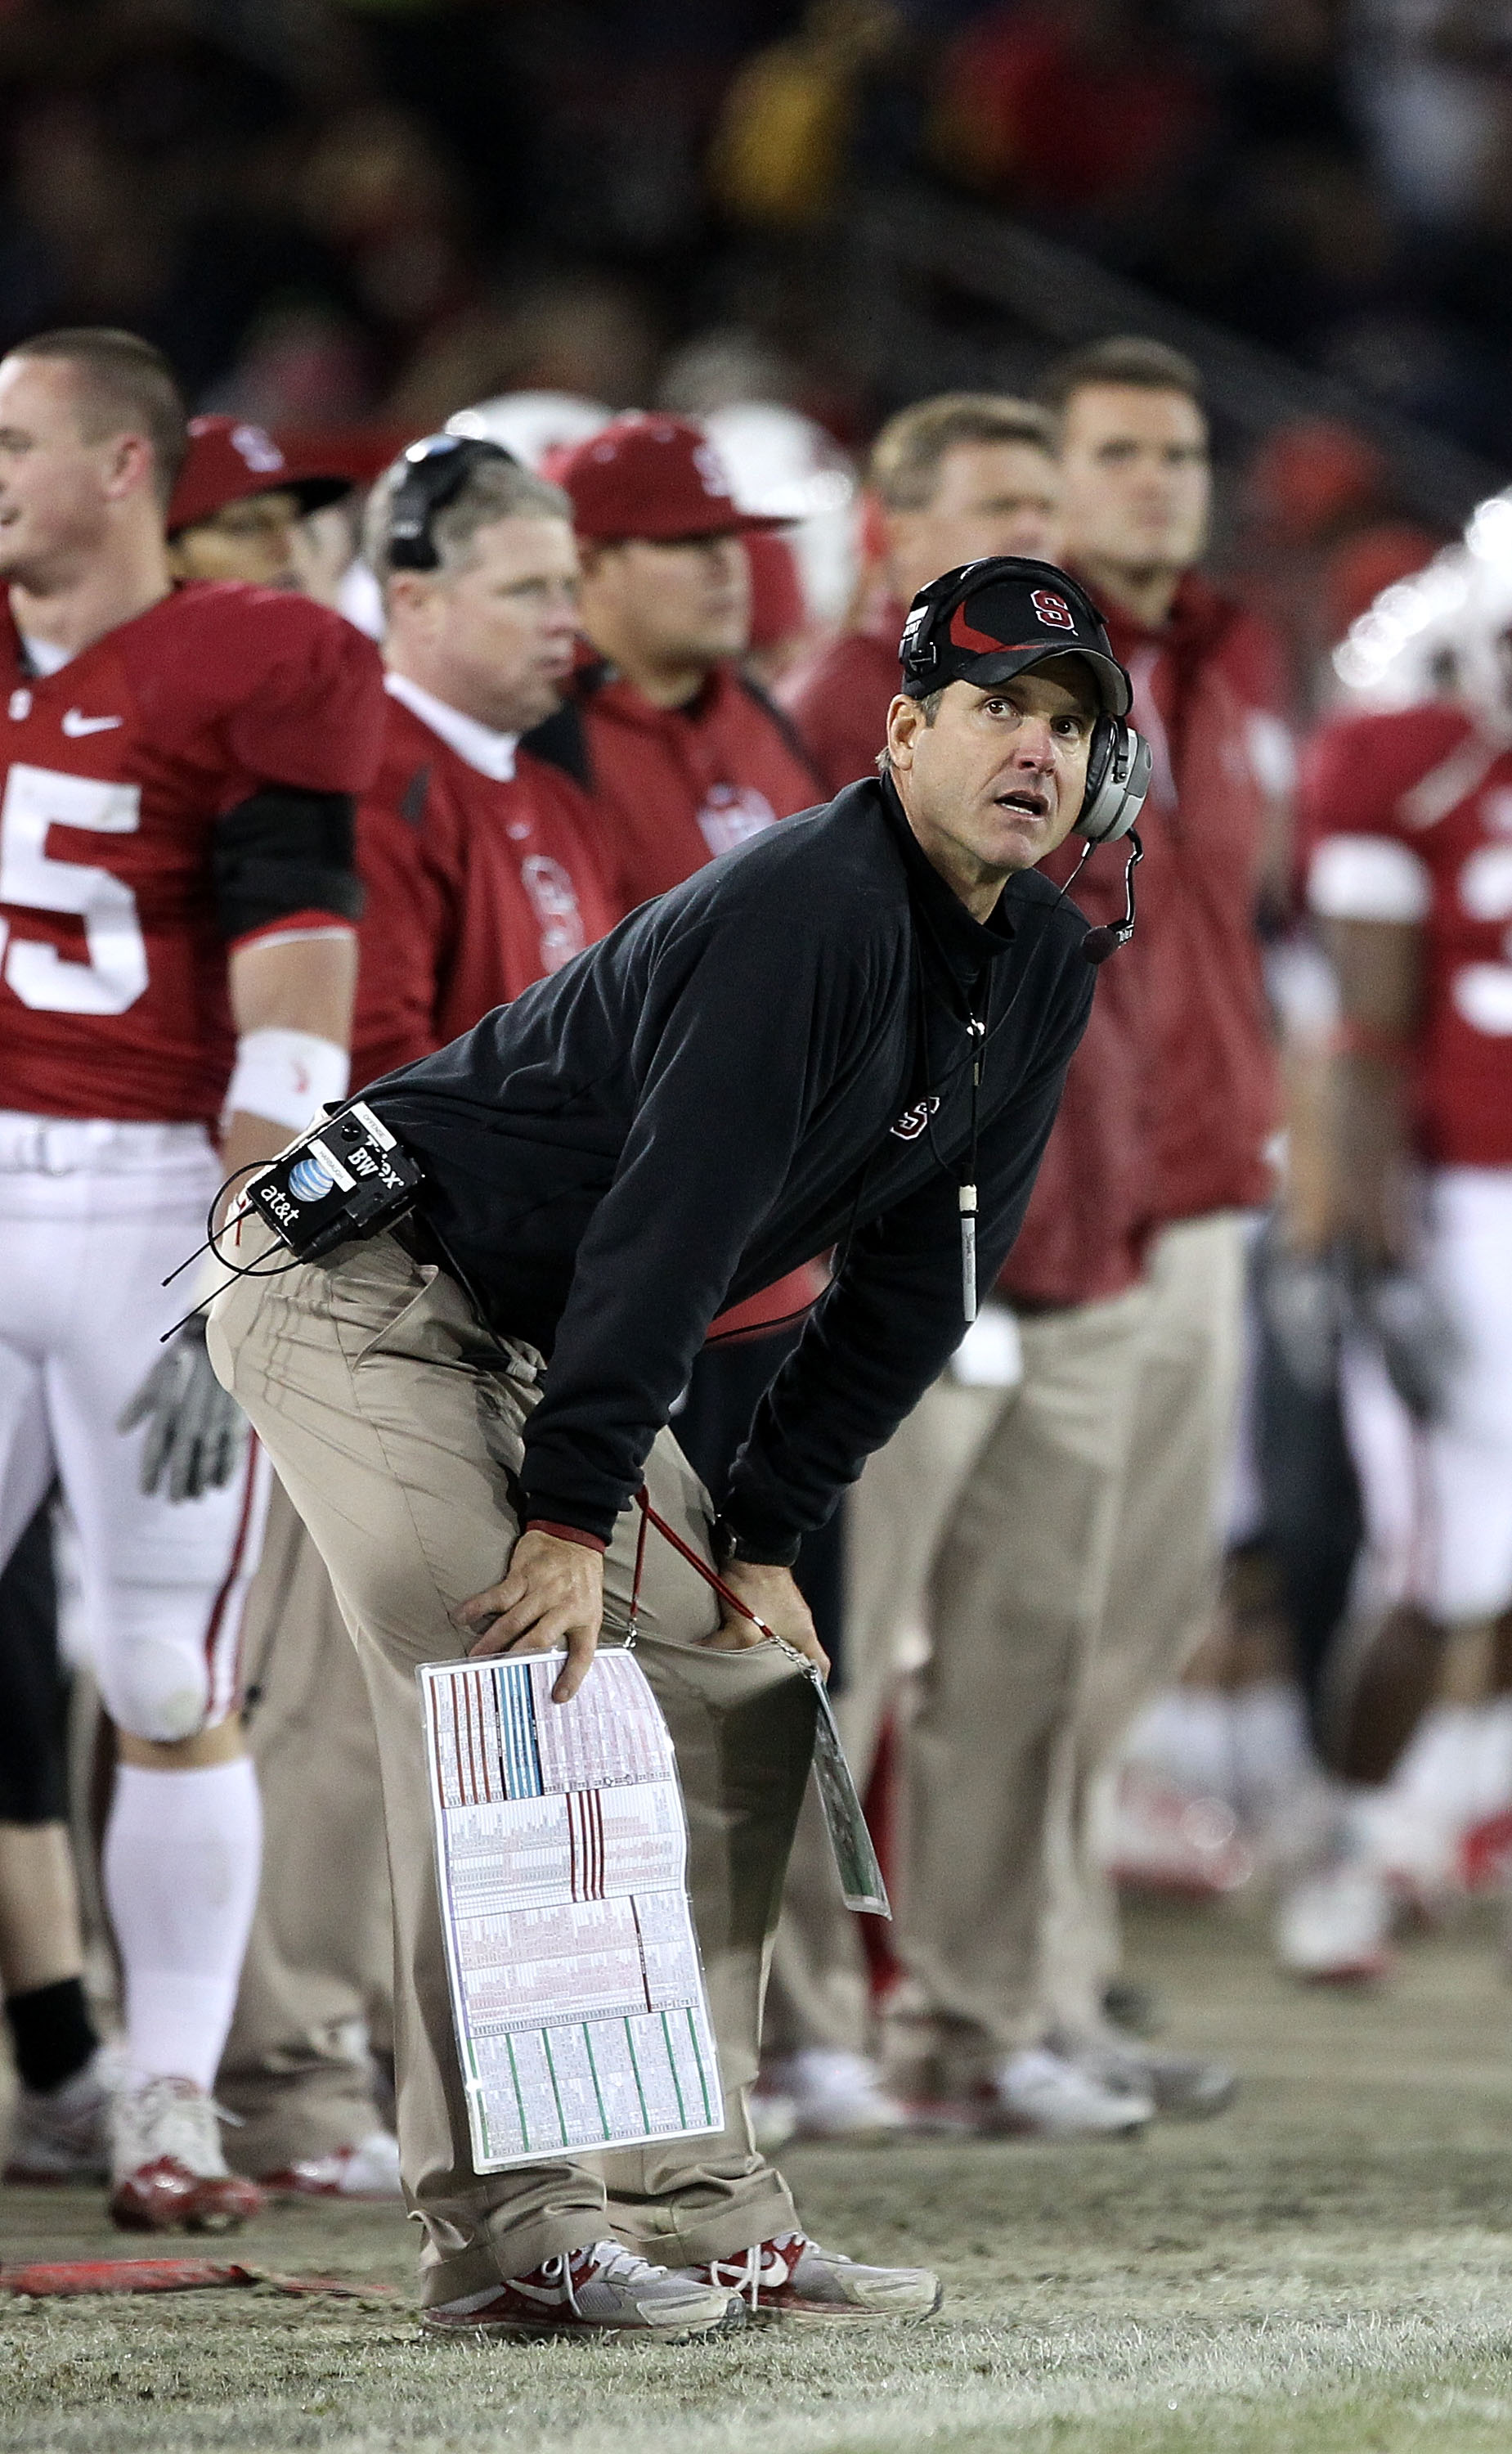 PALO ALTO, CA - NOVEMBER 27:  Head coach Jim Harbaugh of the Stanford Cardinal watches his team play the Oregon State Beavers at Stanford Stadium on November 27, 2010 in Palo Alto, California.  (Photo by Ezra Shaw/Getty Images)